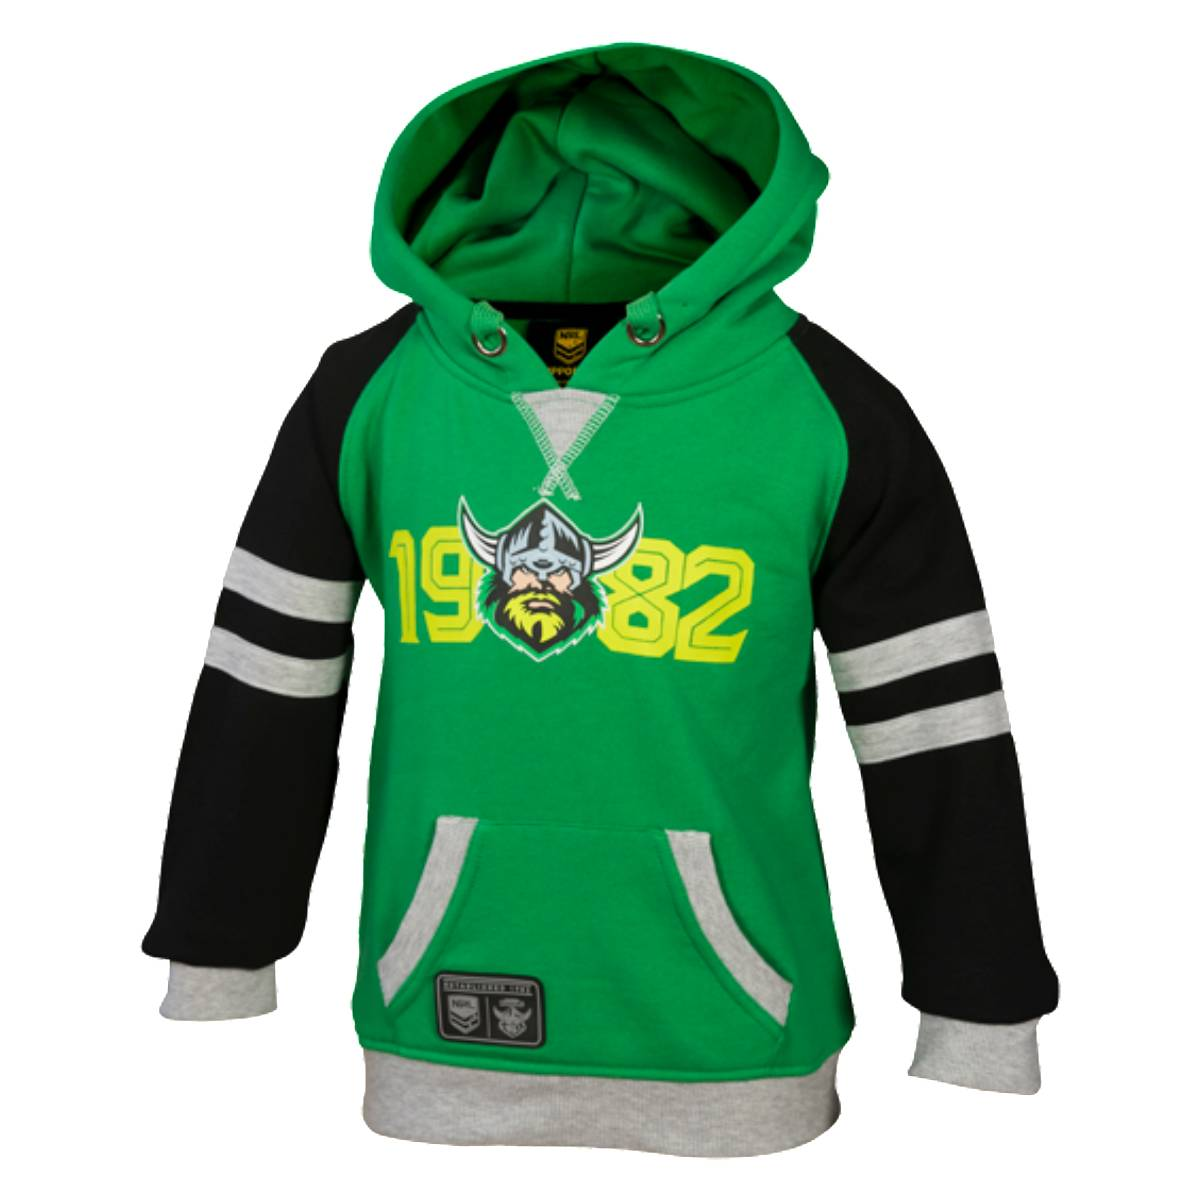 mainToddler 1982 Fleece Hoody0